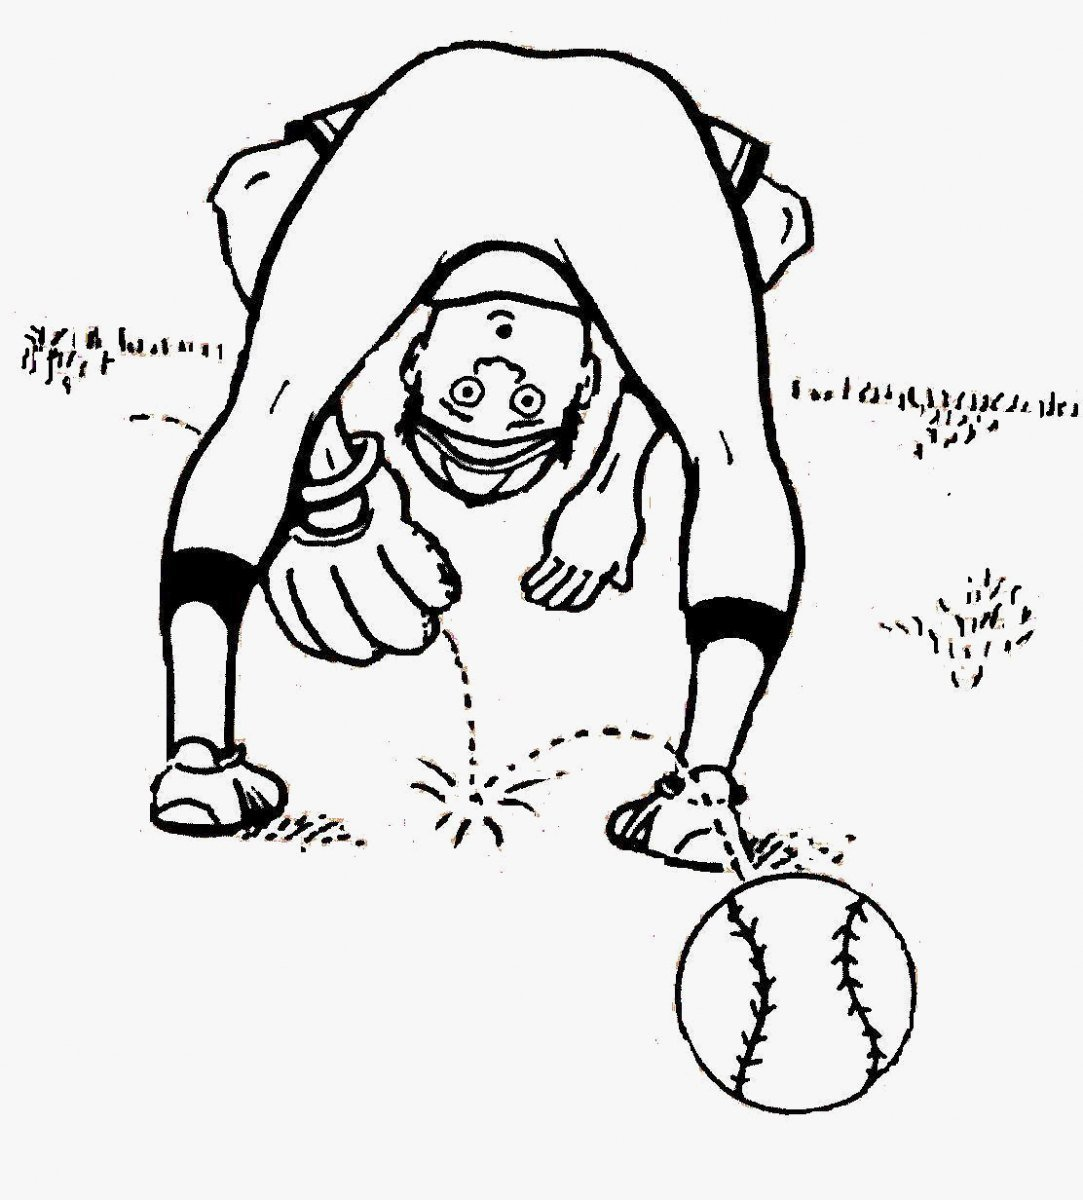 beisbol coloring pages - photo#1